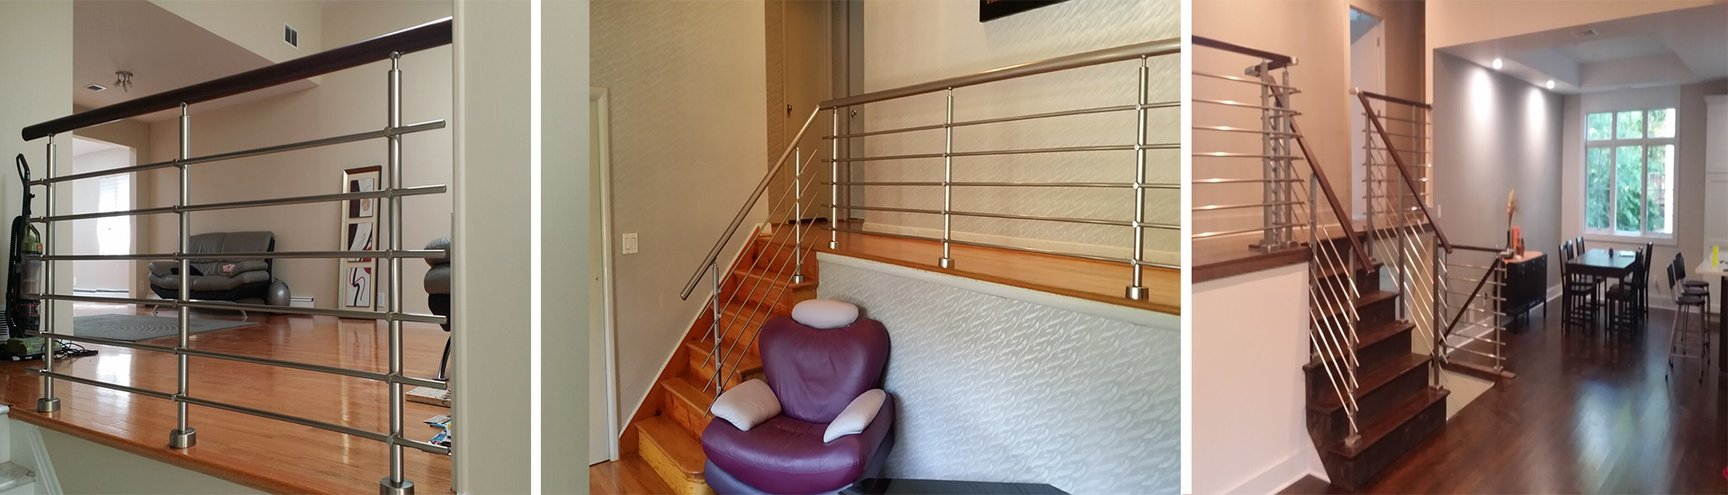 DIY Modern Stairway and Balcony Railing Kits for home & office ...